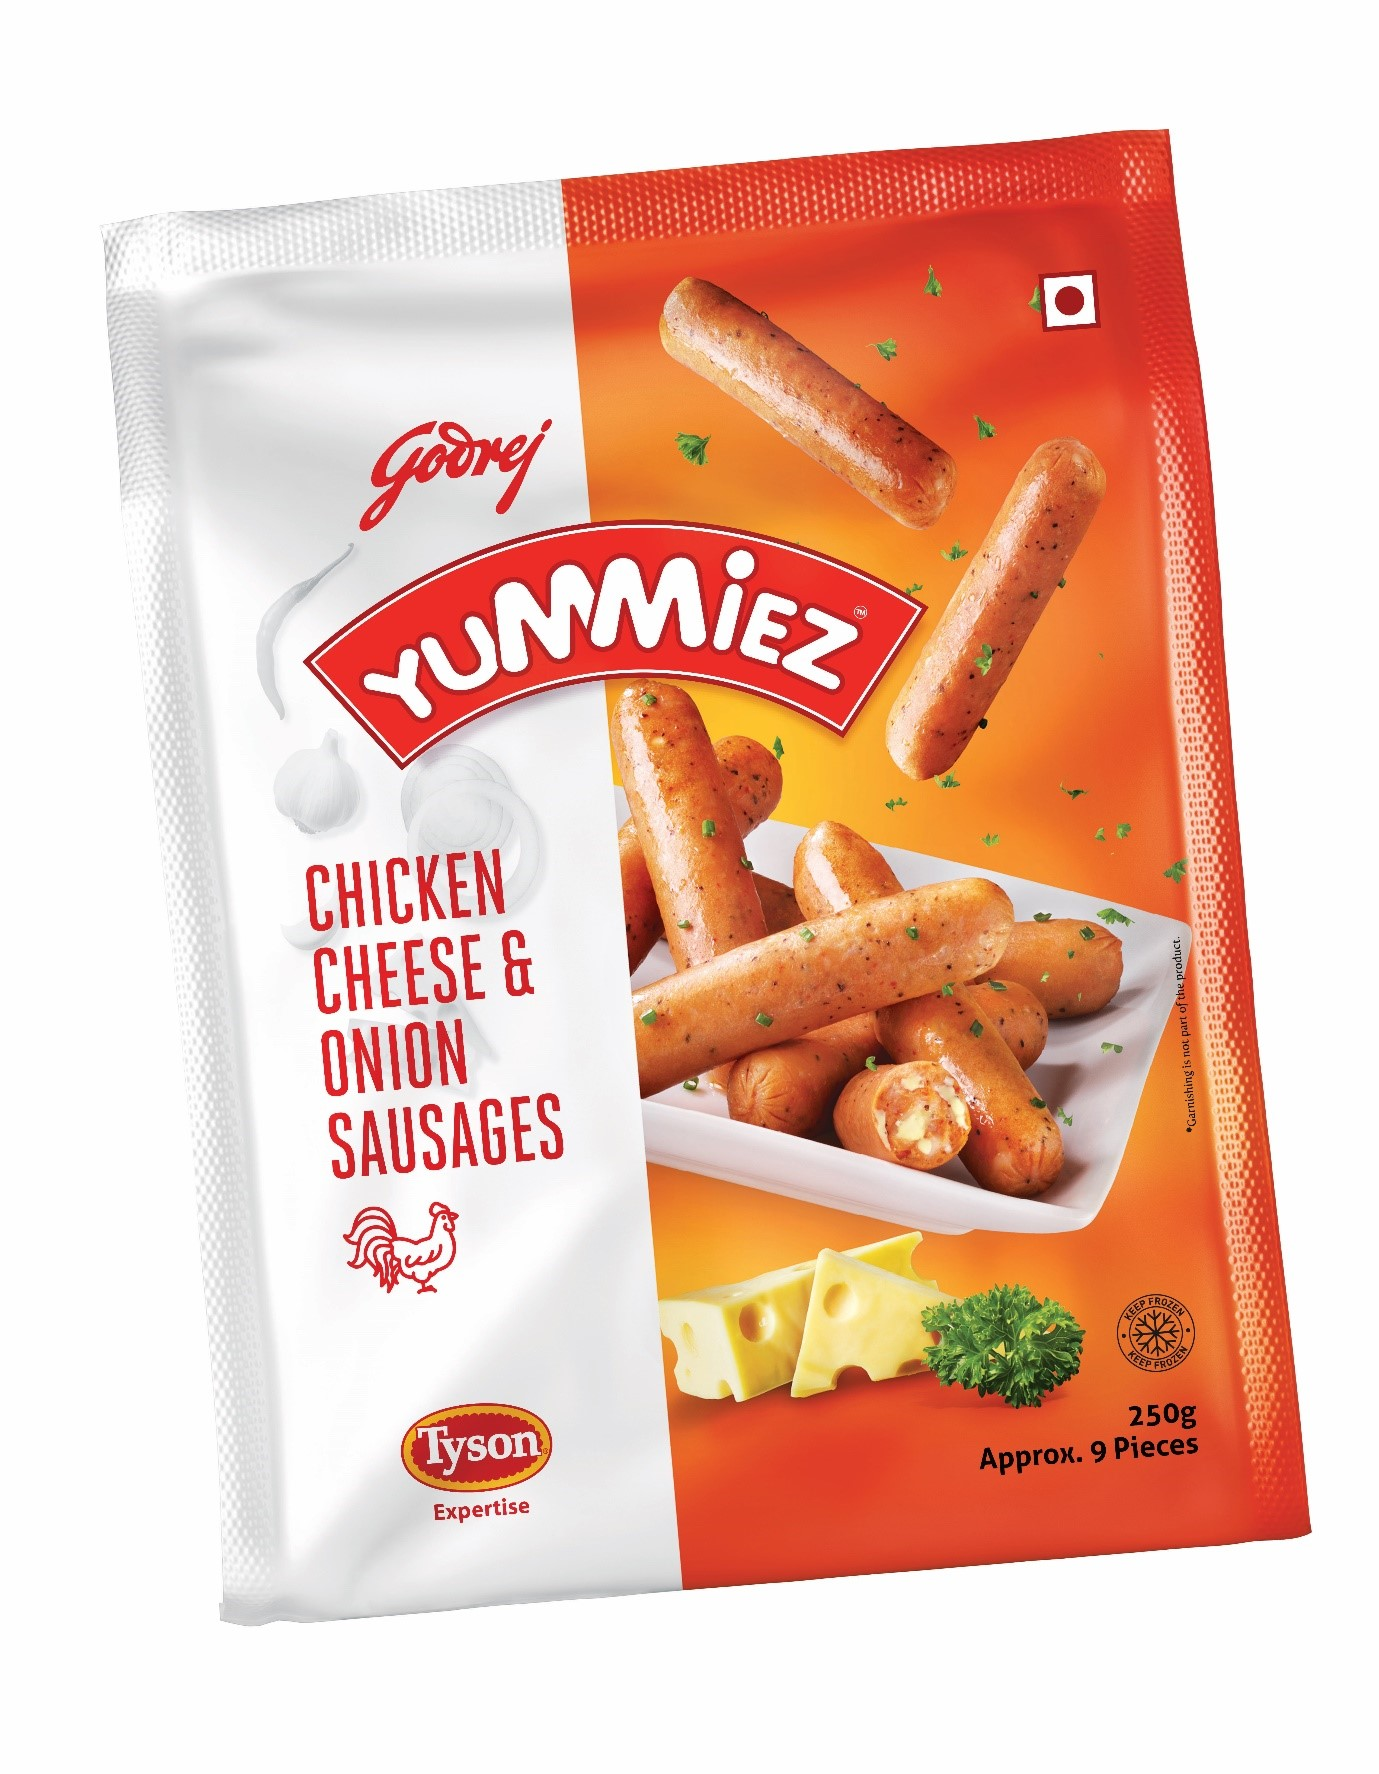 Yummiez  Chicken Cheese & Onion Sausages 250 g